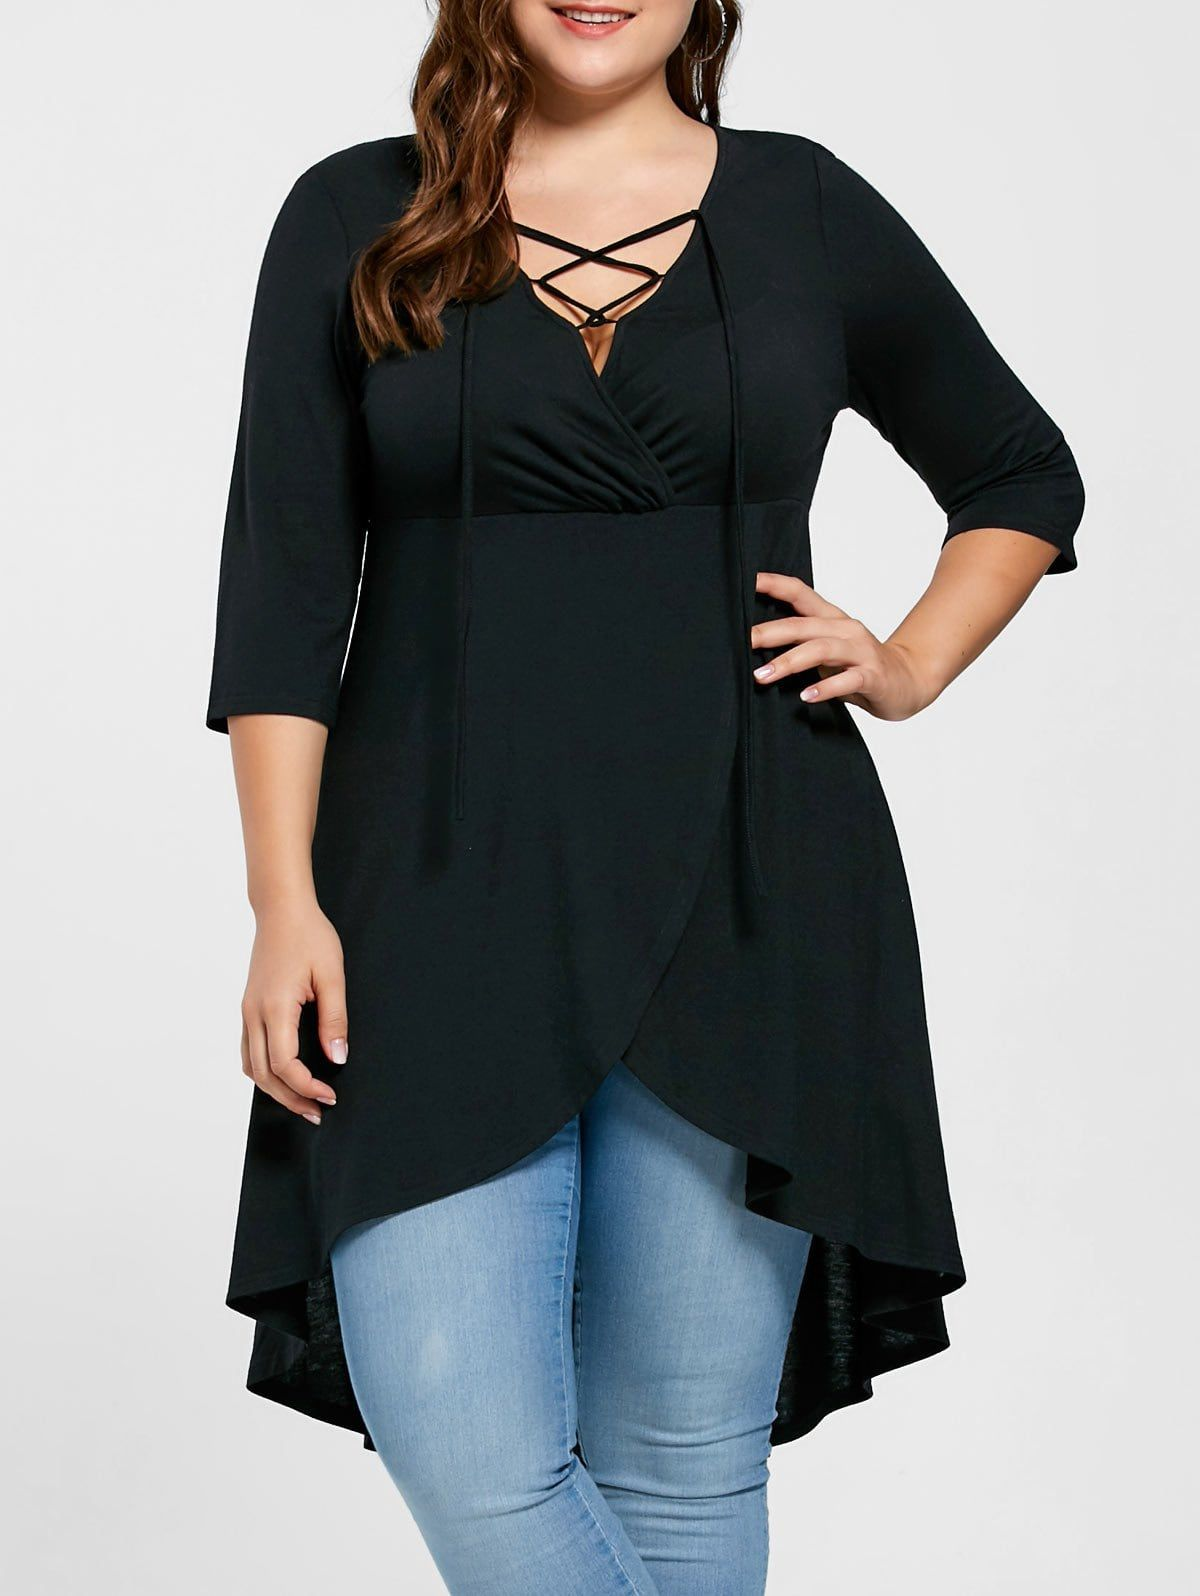 42a0adfe291706 [ 54% OFF ] 2018 Plus Size Overlap Lace Up Top In Black 5xl | Rosegal.com